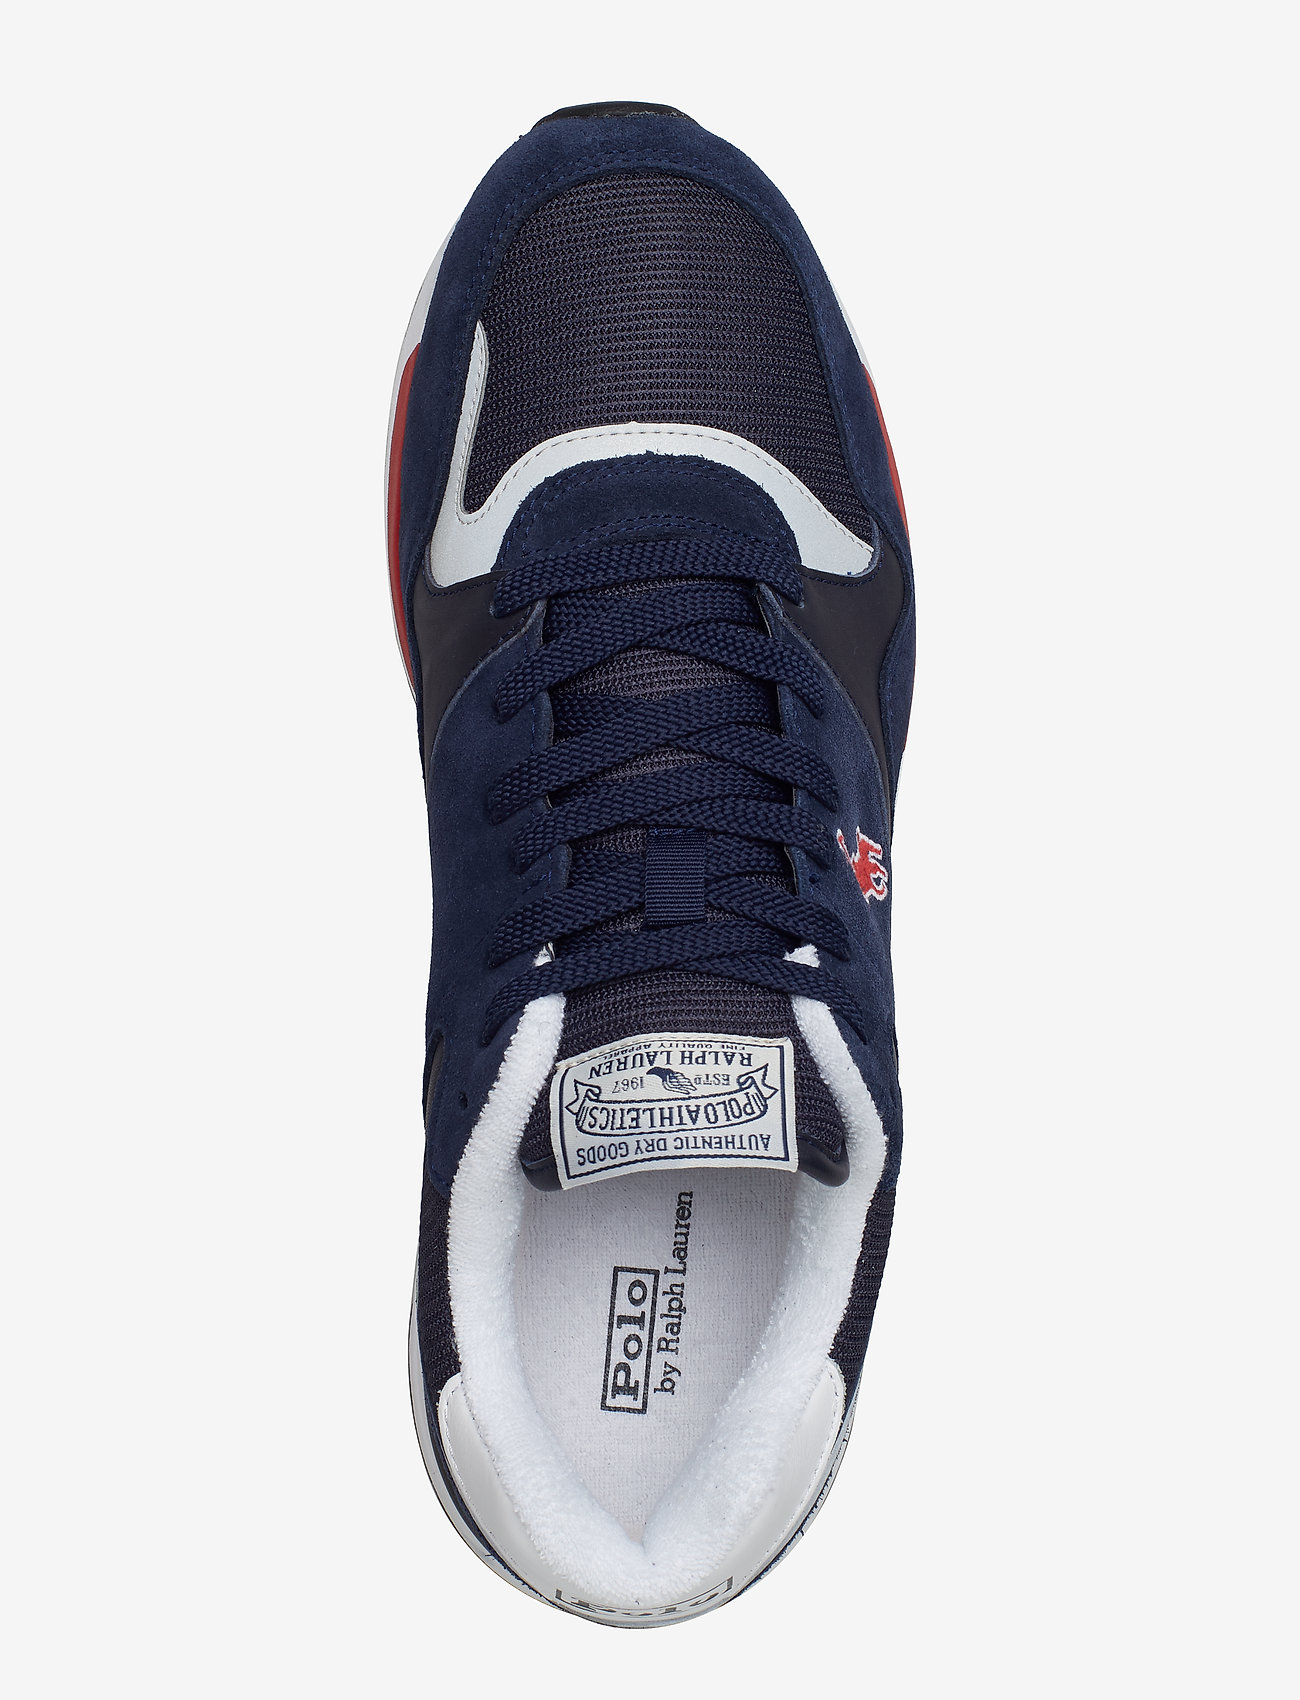 Trackster 100 Leather Sneaker (Newport Navy/auth) - Polo Ralph Lauren